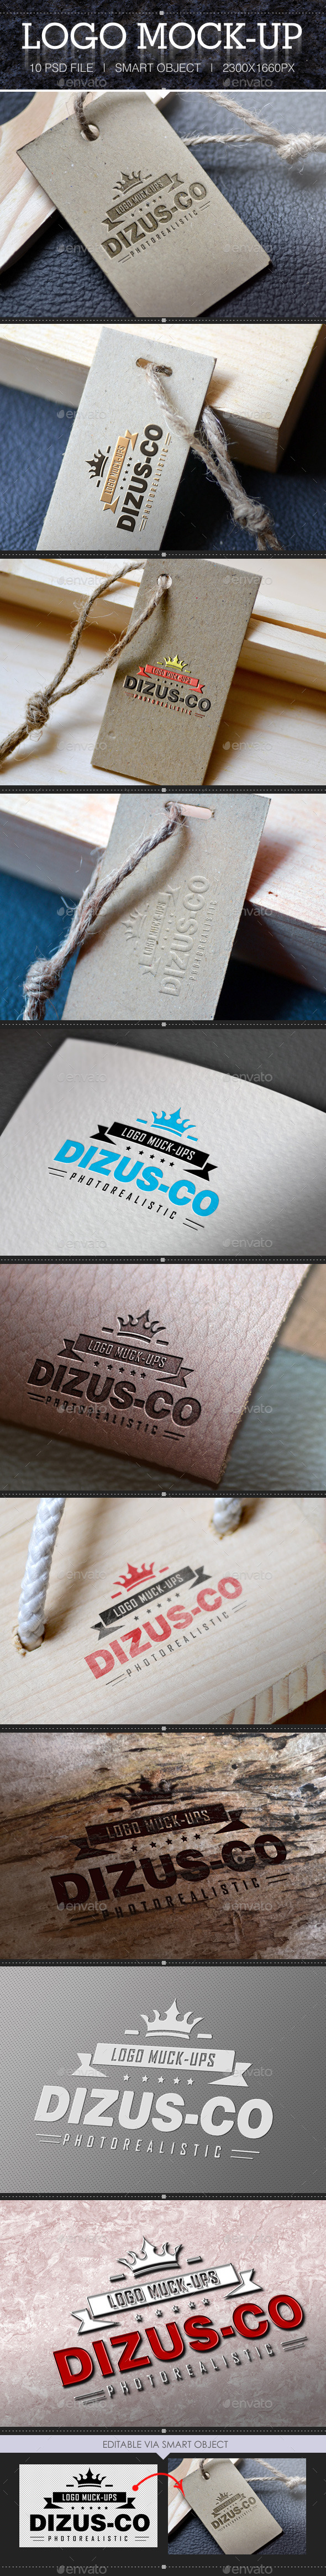 GraphicRiver 10 Photorealistic Logo Mock-Ups 9813468